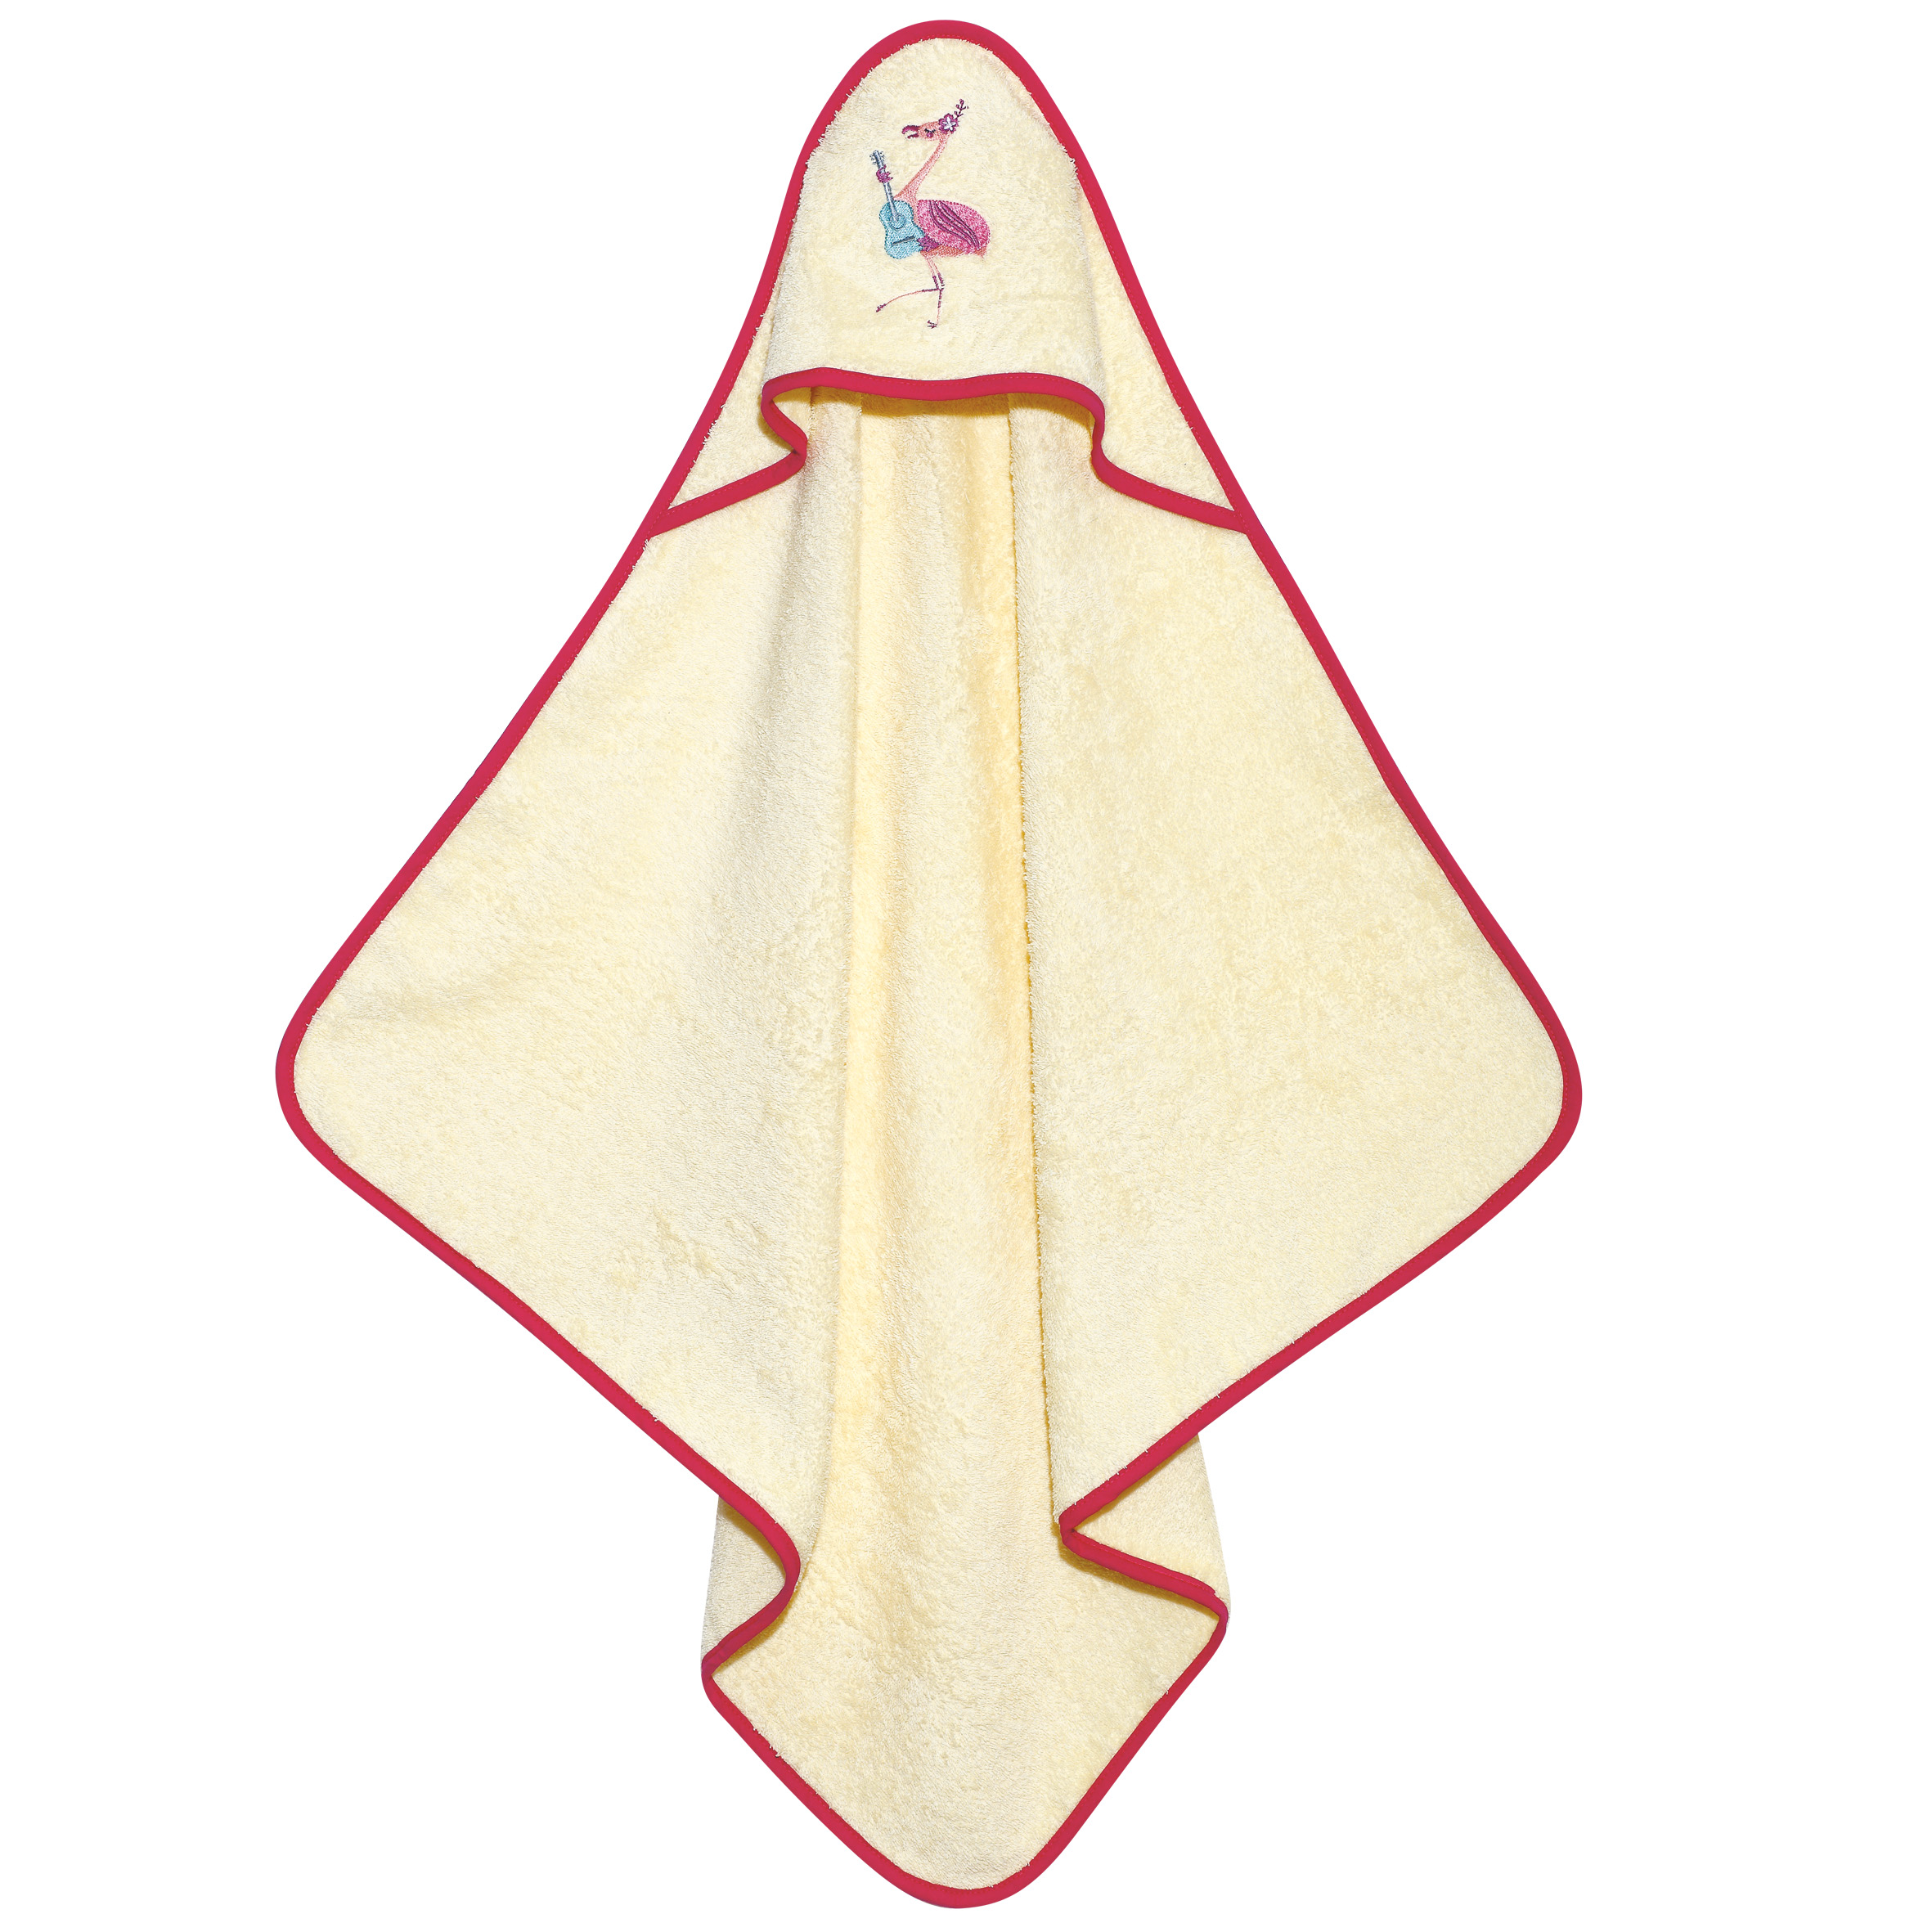 Das Baby Κάπα Baby Smile Embroiledry 6461 Κρεμ 620711006461